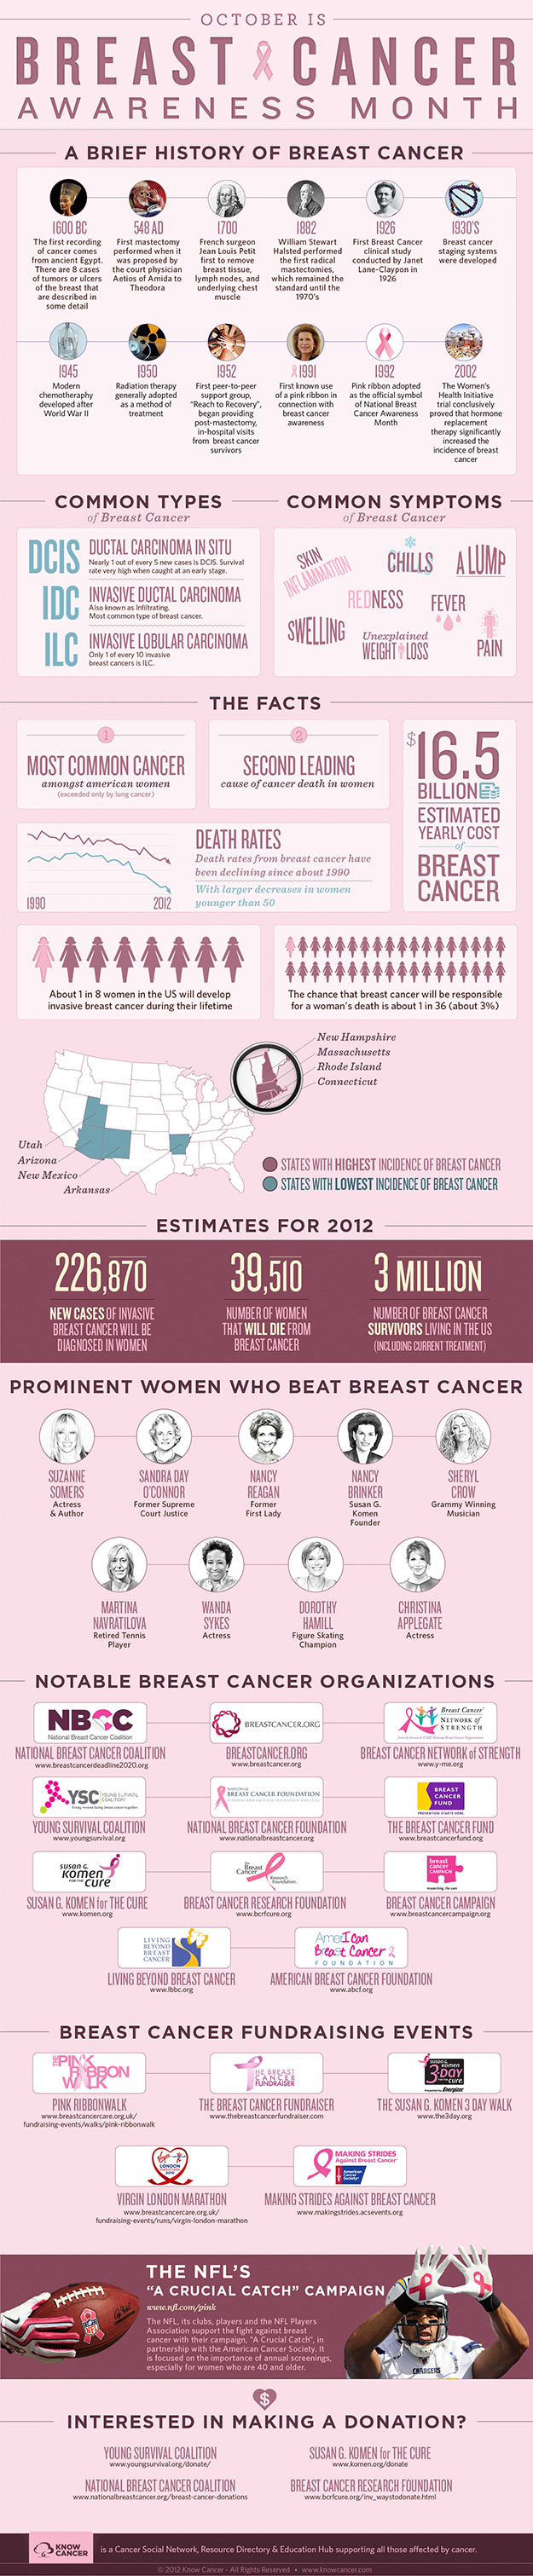 breast cancer infographic